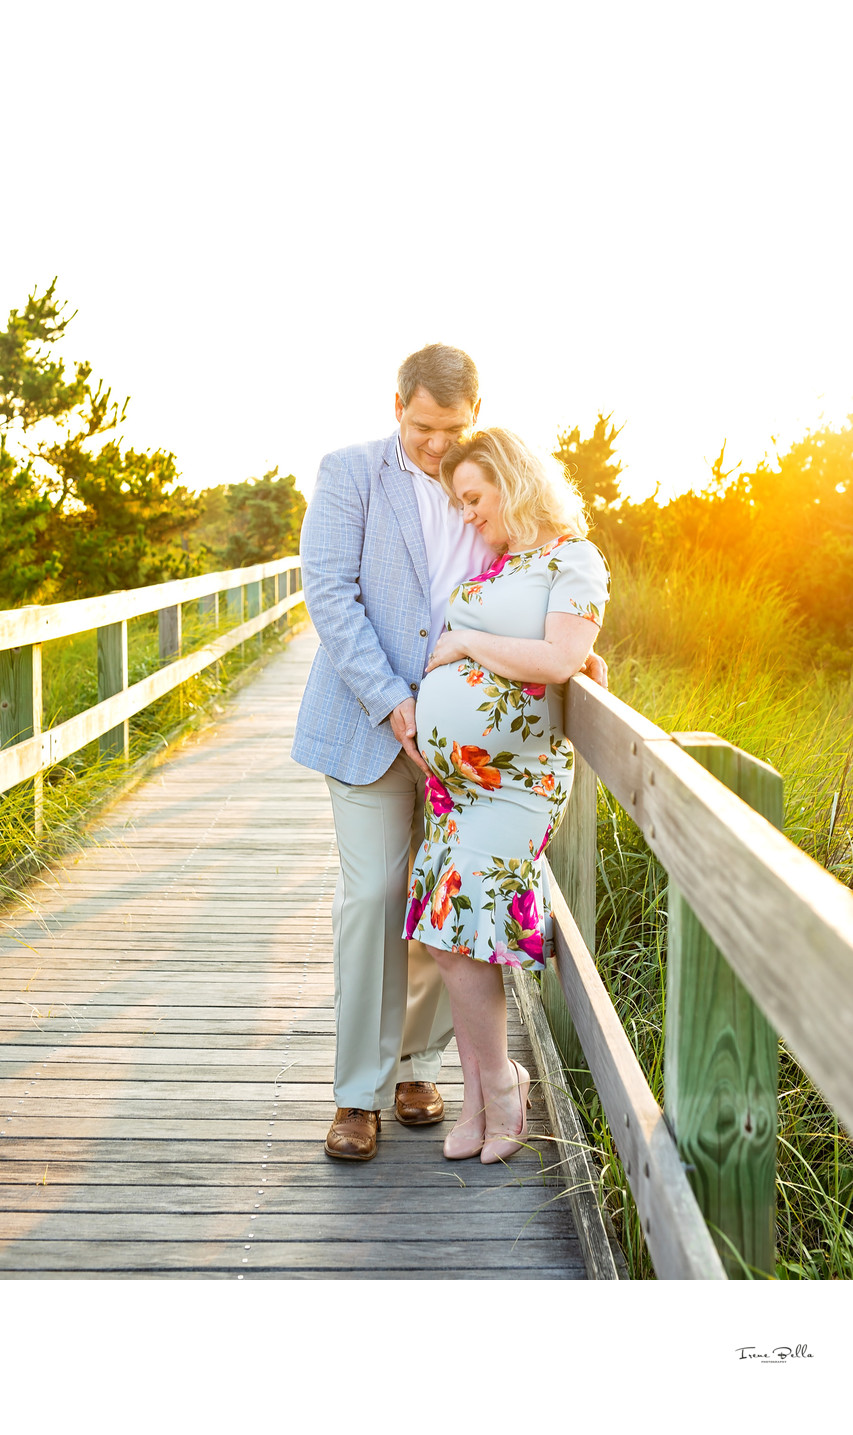 Robert Moses Maternity Photo Session